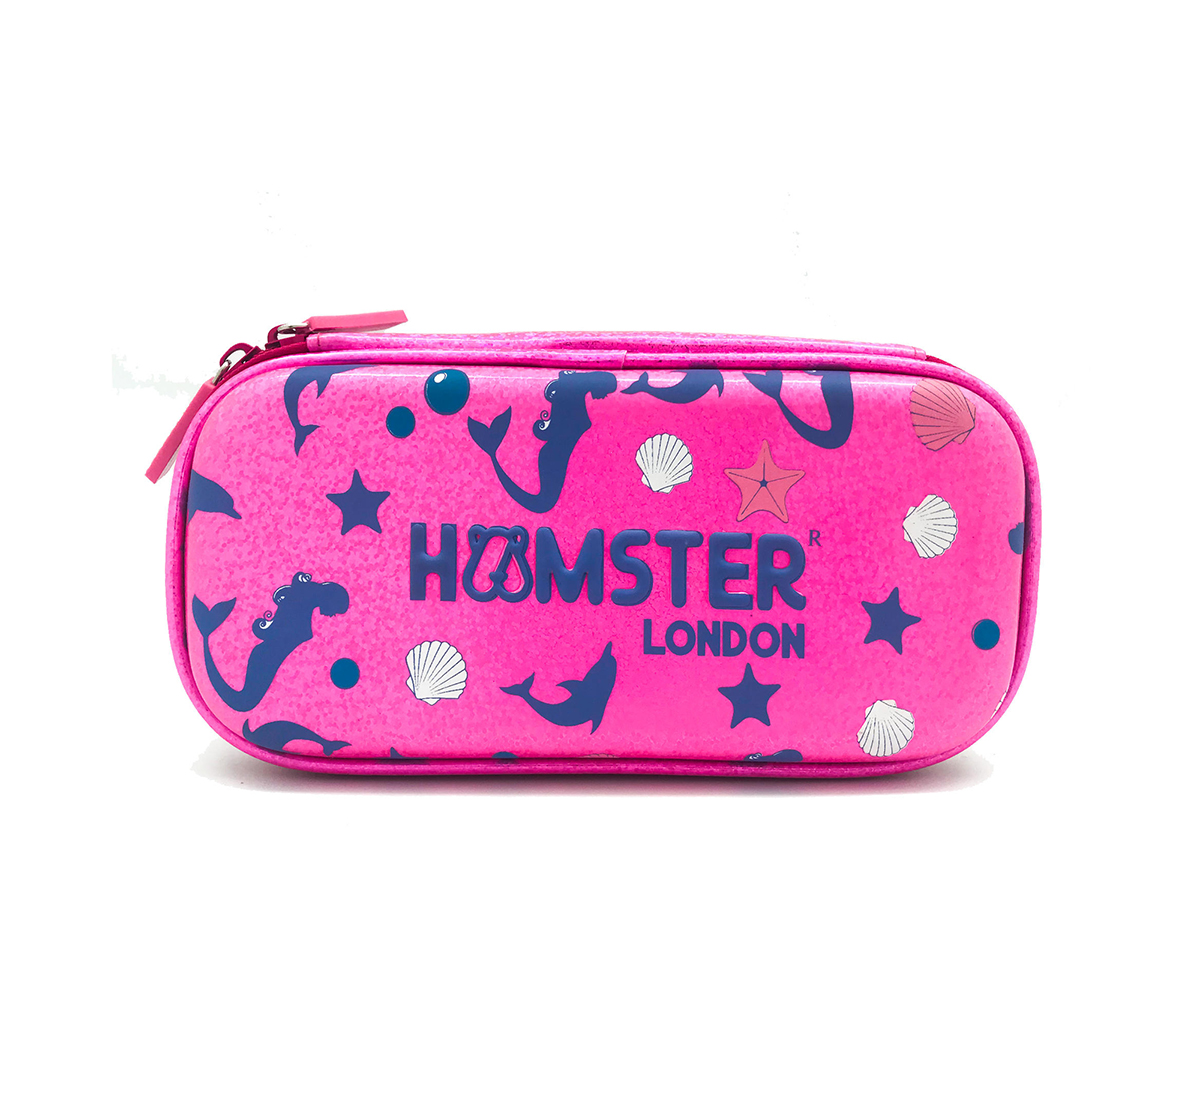 Hamster London   Hamster London Small Mermaid Stationery Hardcase for Girls age 3Y+ (Pink)